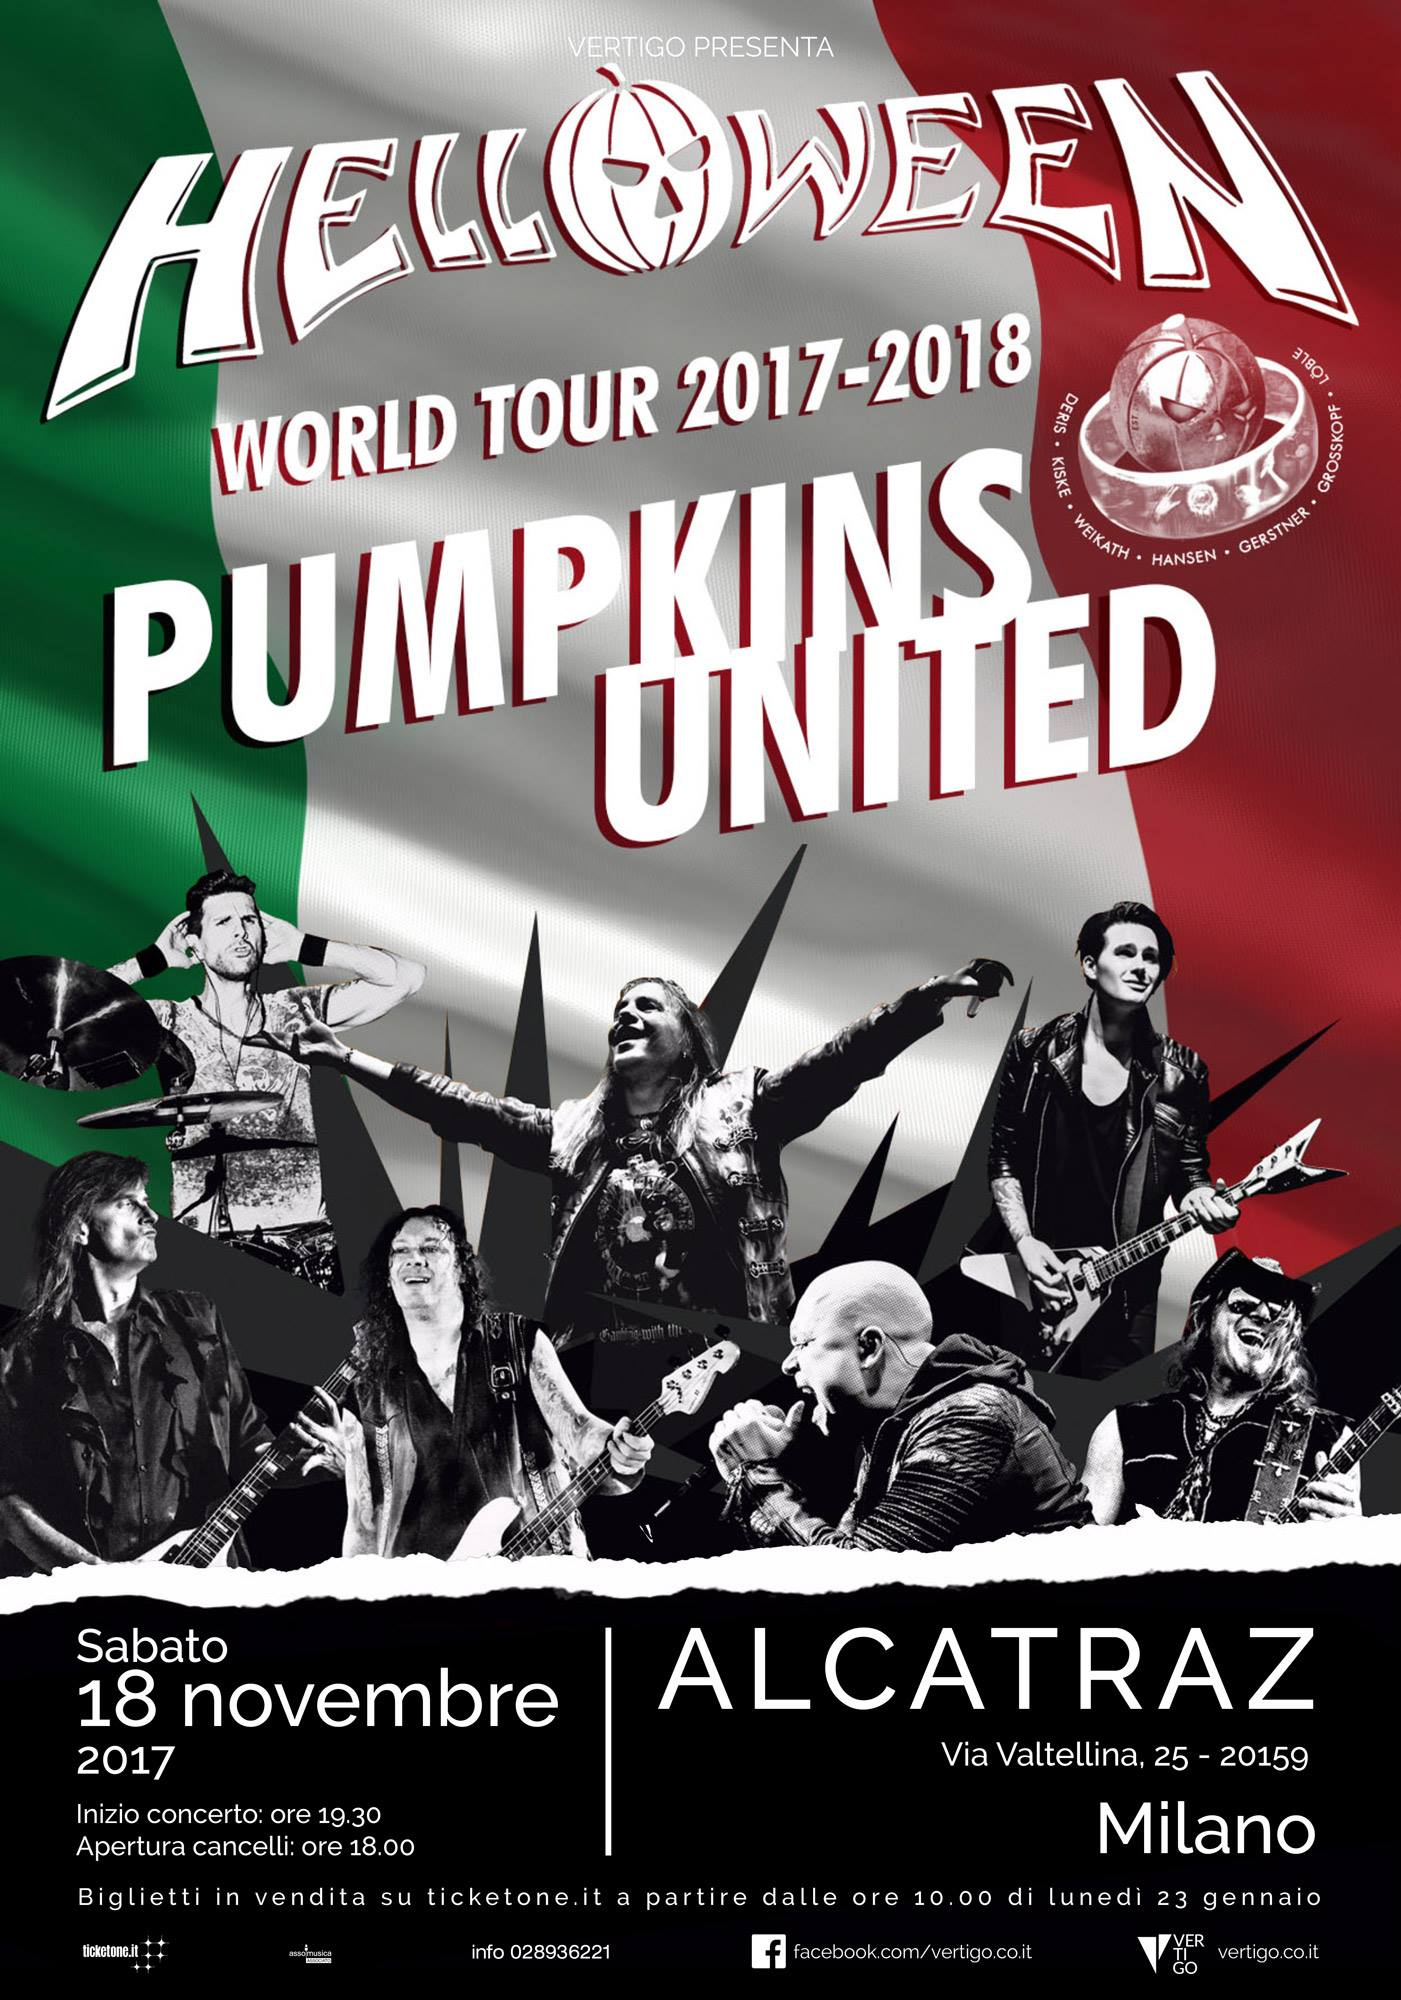 Helloween - Alcatraz - Pumpkins United World Tour 2017 - 2018 - Promo